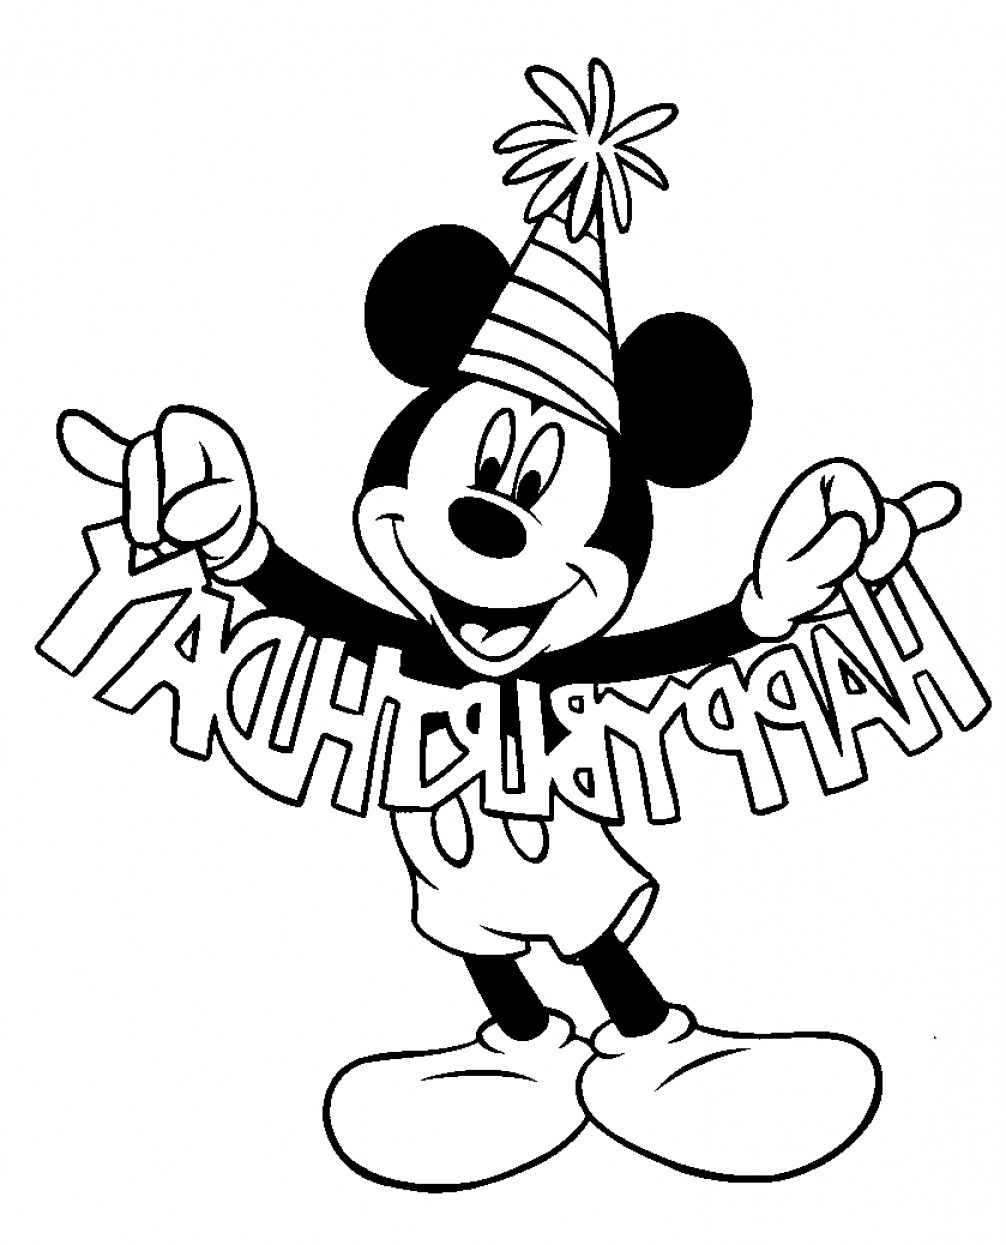 Minnie Mouse Vector Clip Art: Nanminfo Mickey Mouse Black And White Vector